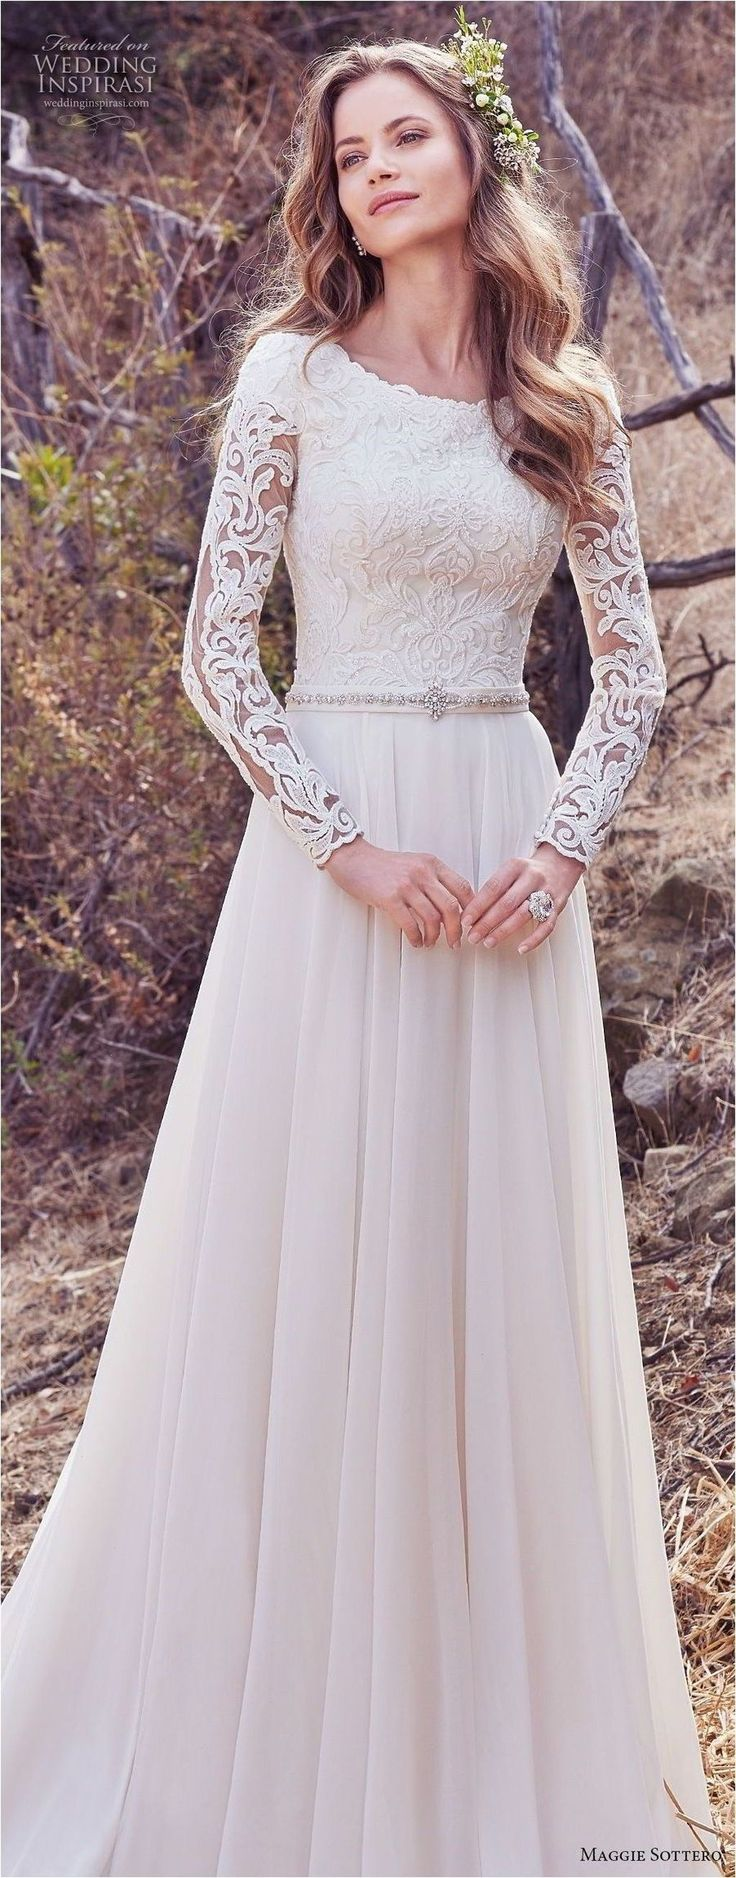 The 84 best BRAUTMODE images on Pinterest | Wedding frocks ...